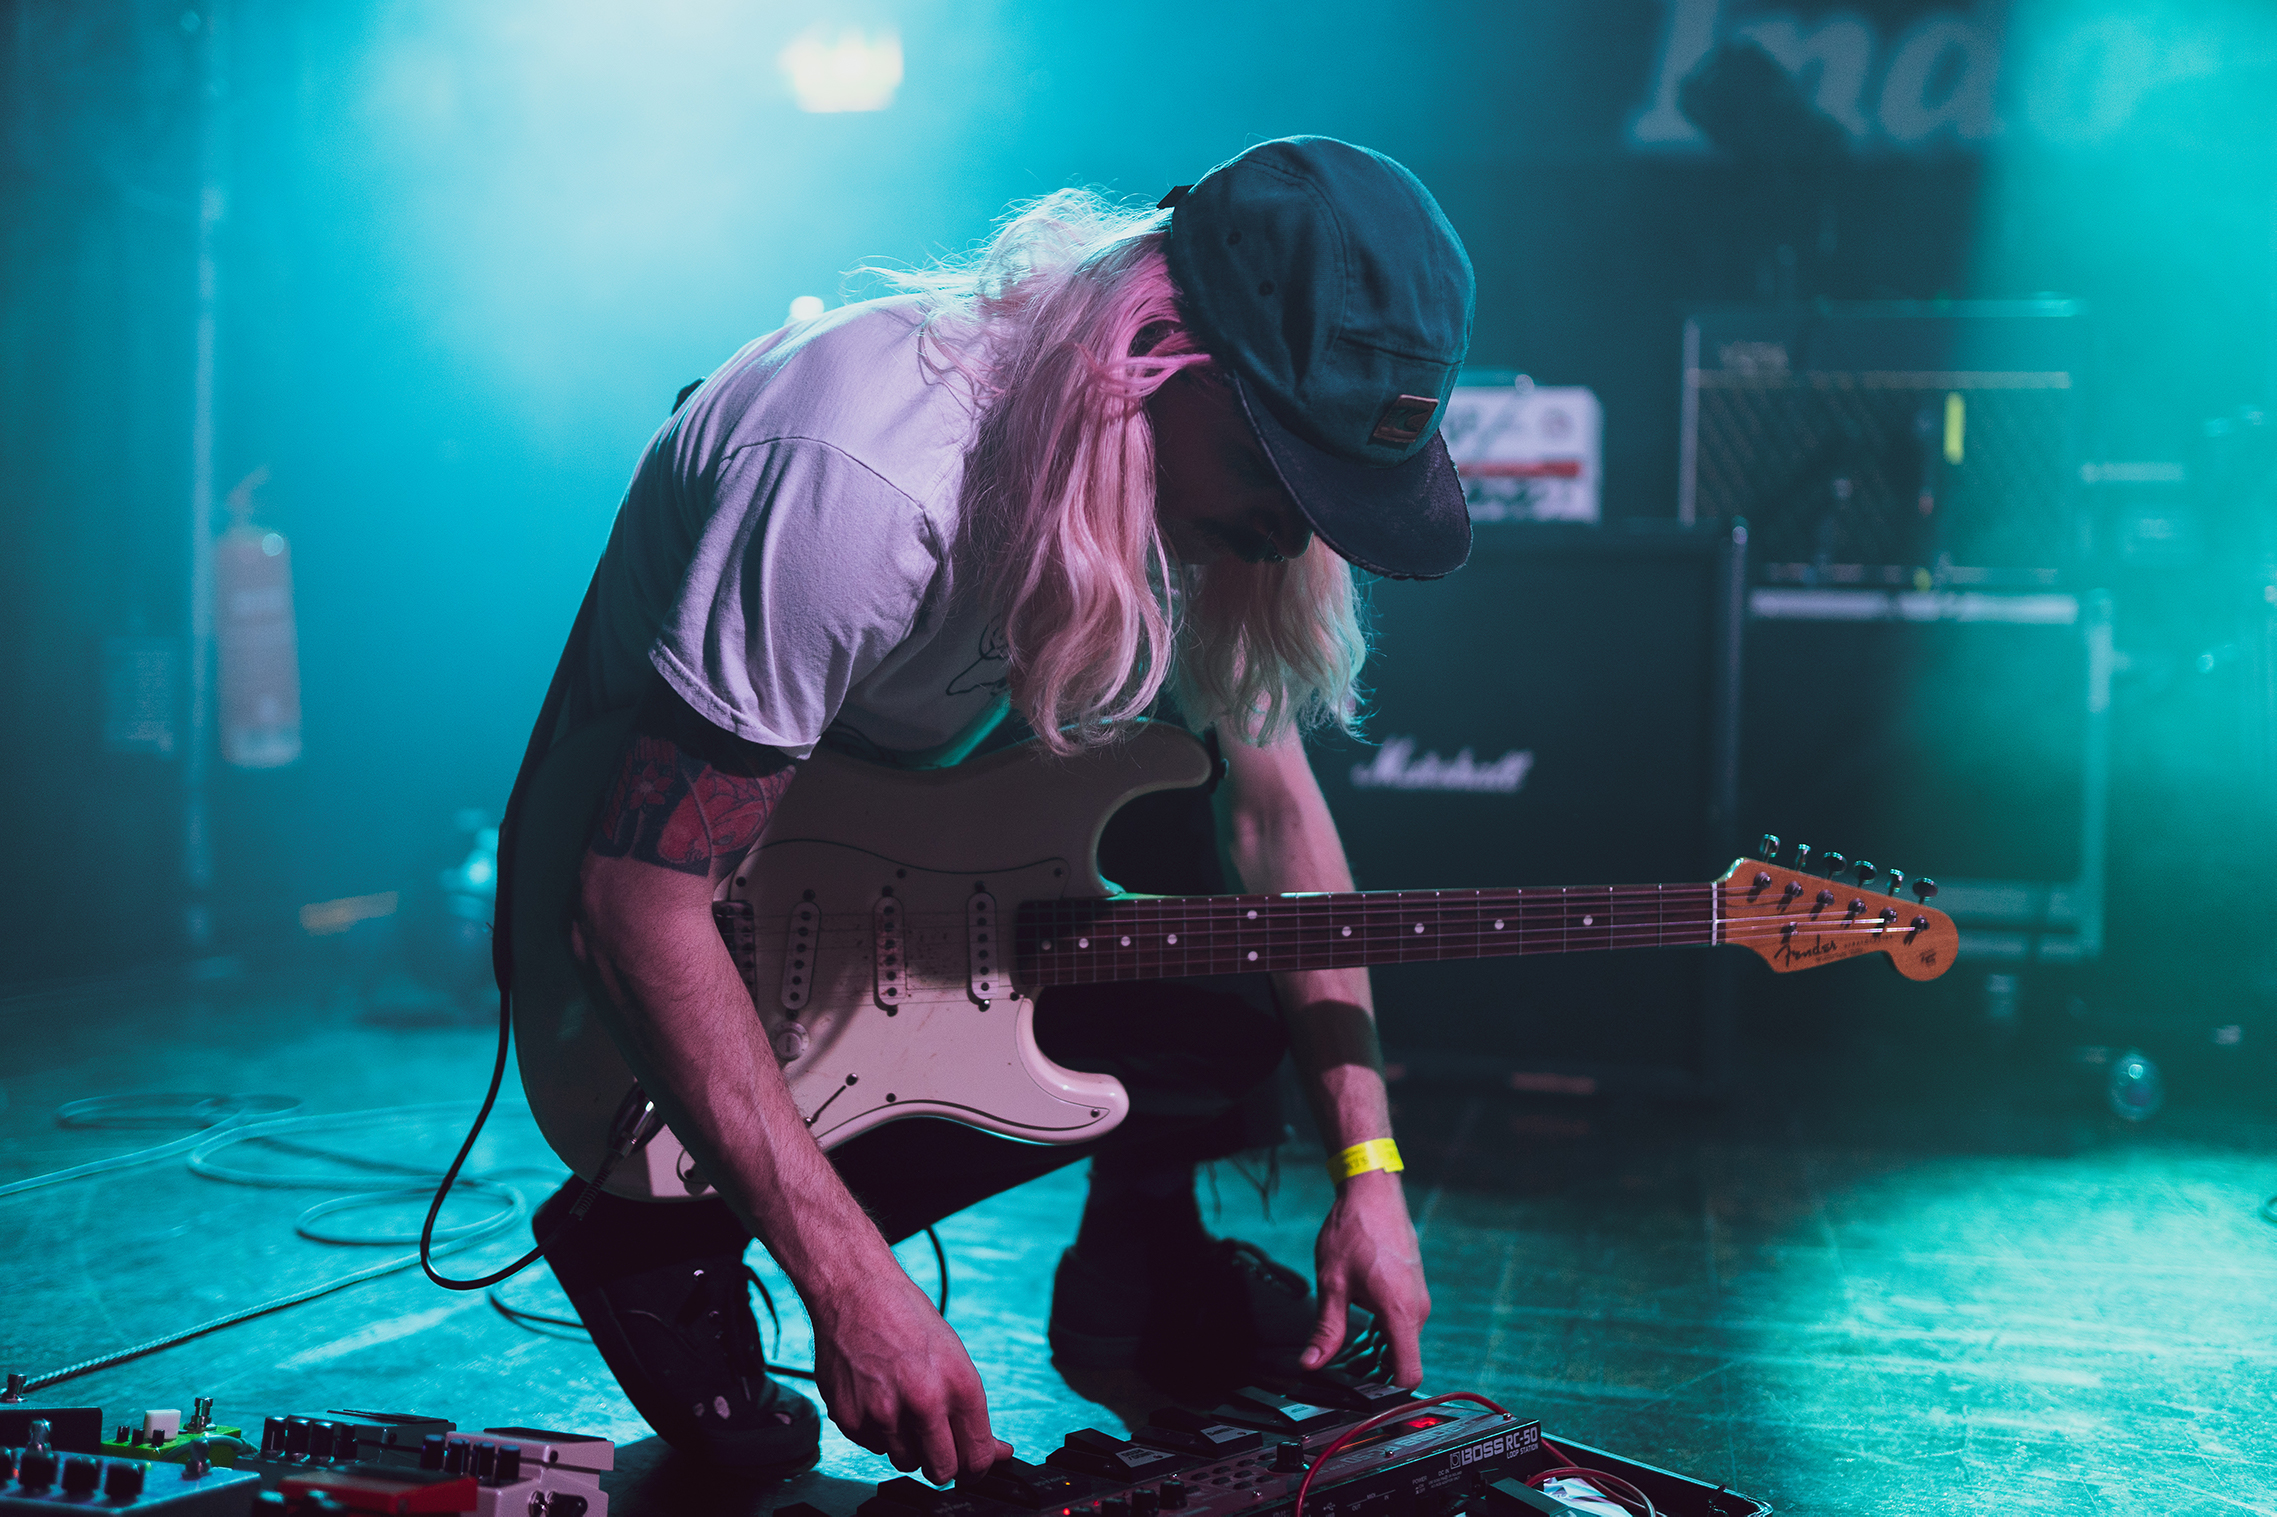 4 Gender Roles - Scala - 17_04_19 - Milly McAlister 2.jpg